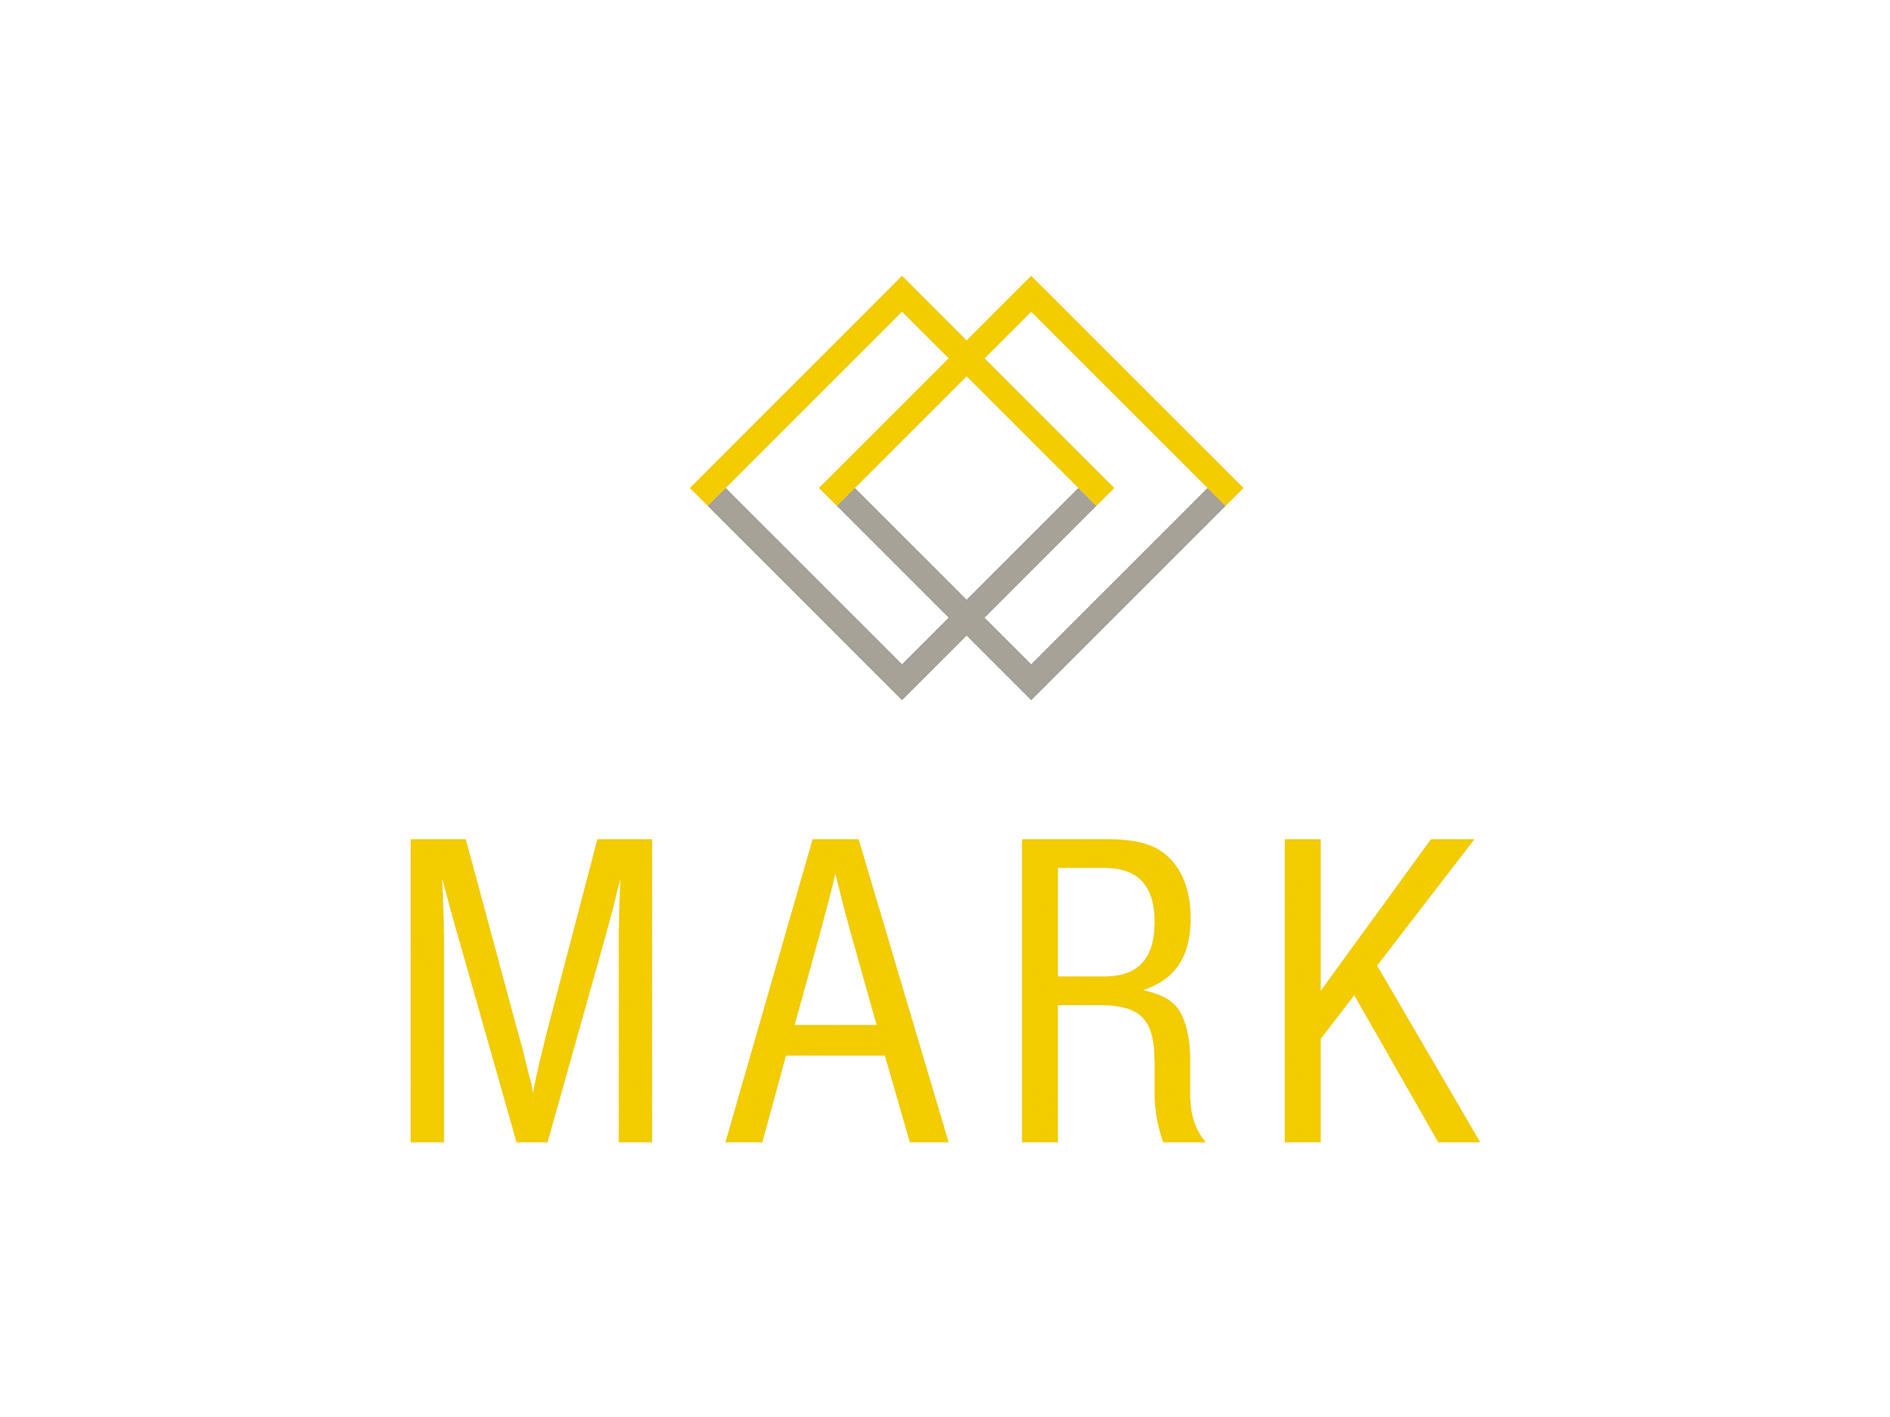 MARK - Developed for the Luxury Jeweller who wants to spend less time finding information and more time with their valued customers. A system which is easy to use, integrates into your work processes and involves all departments from front of house to internal workshops and the office.